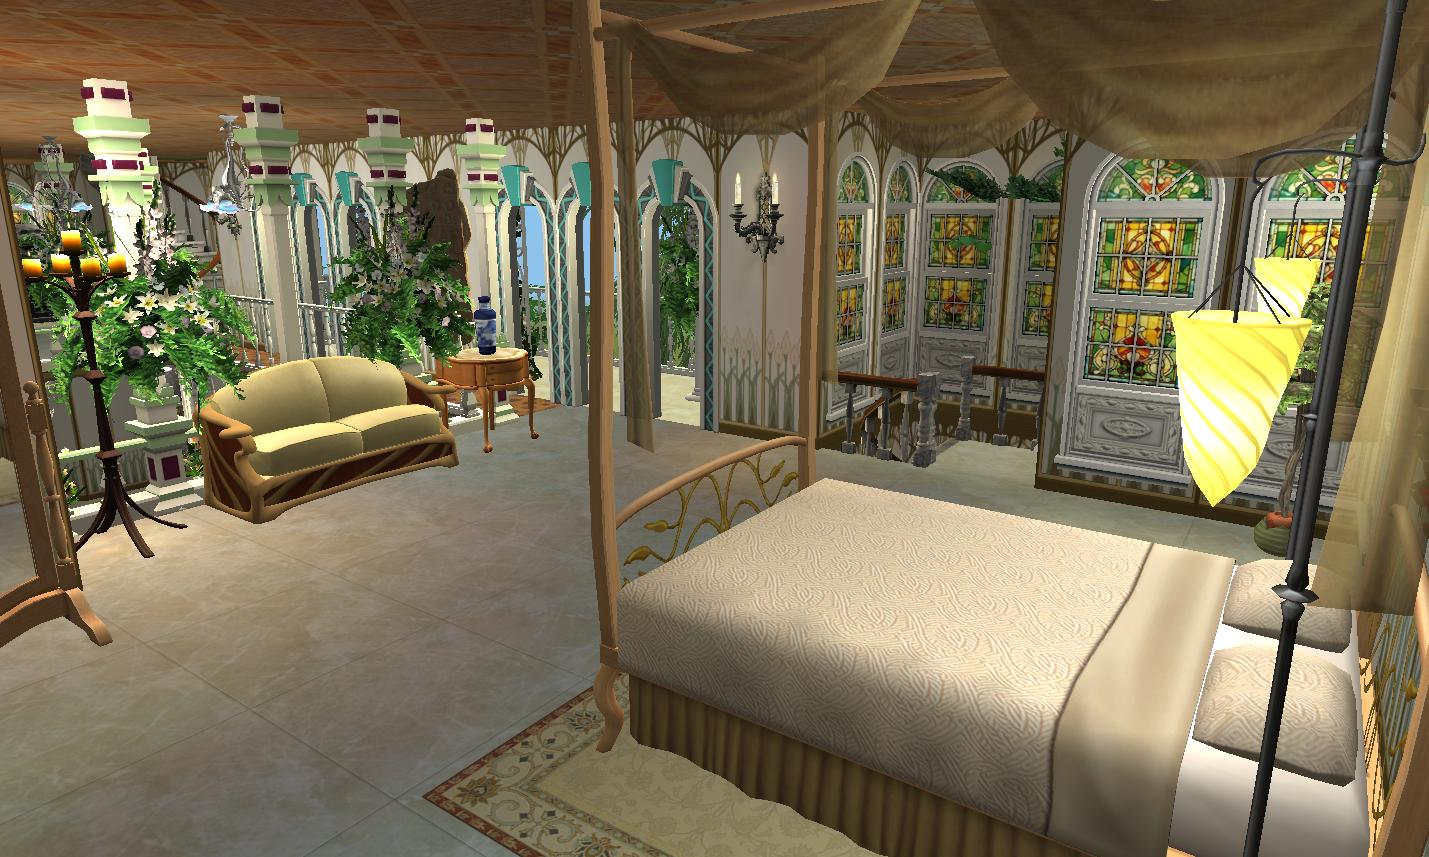 Mod The Sims  Rivendell  The Last Homely House East of